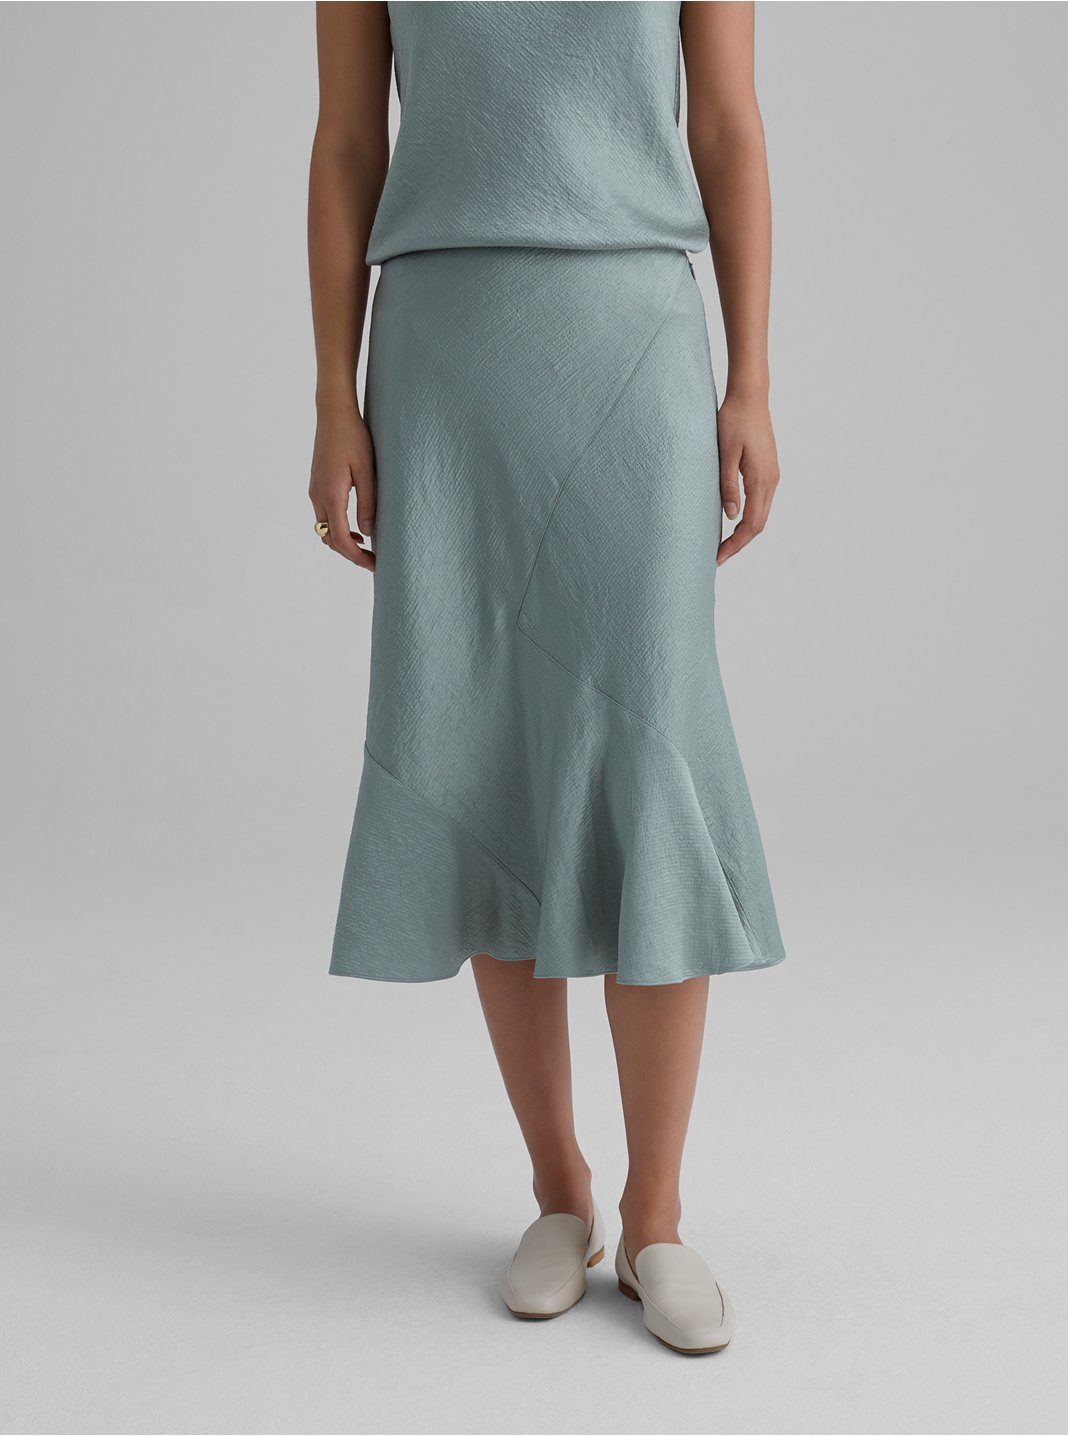 Textured Slip Skirt